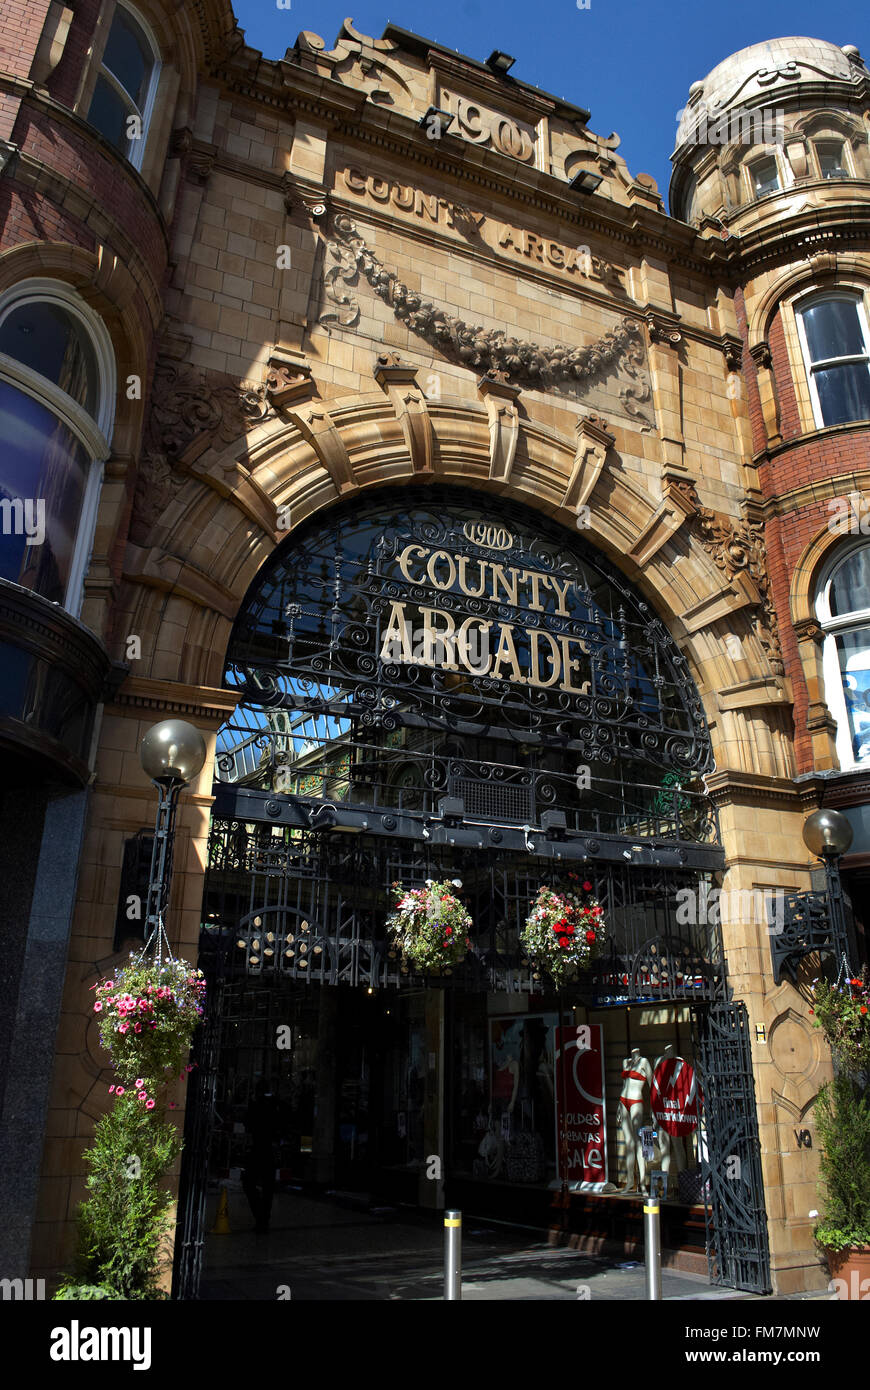 The County Arcade, Victoria Quarter, Leeds, West Yorkshire - Stock Image